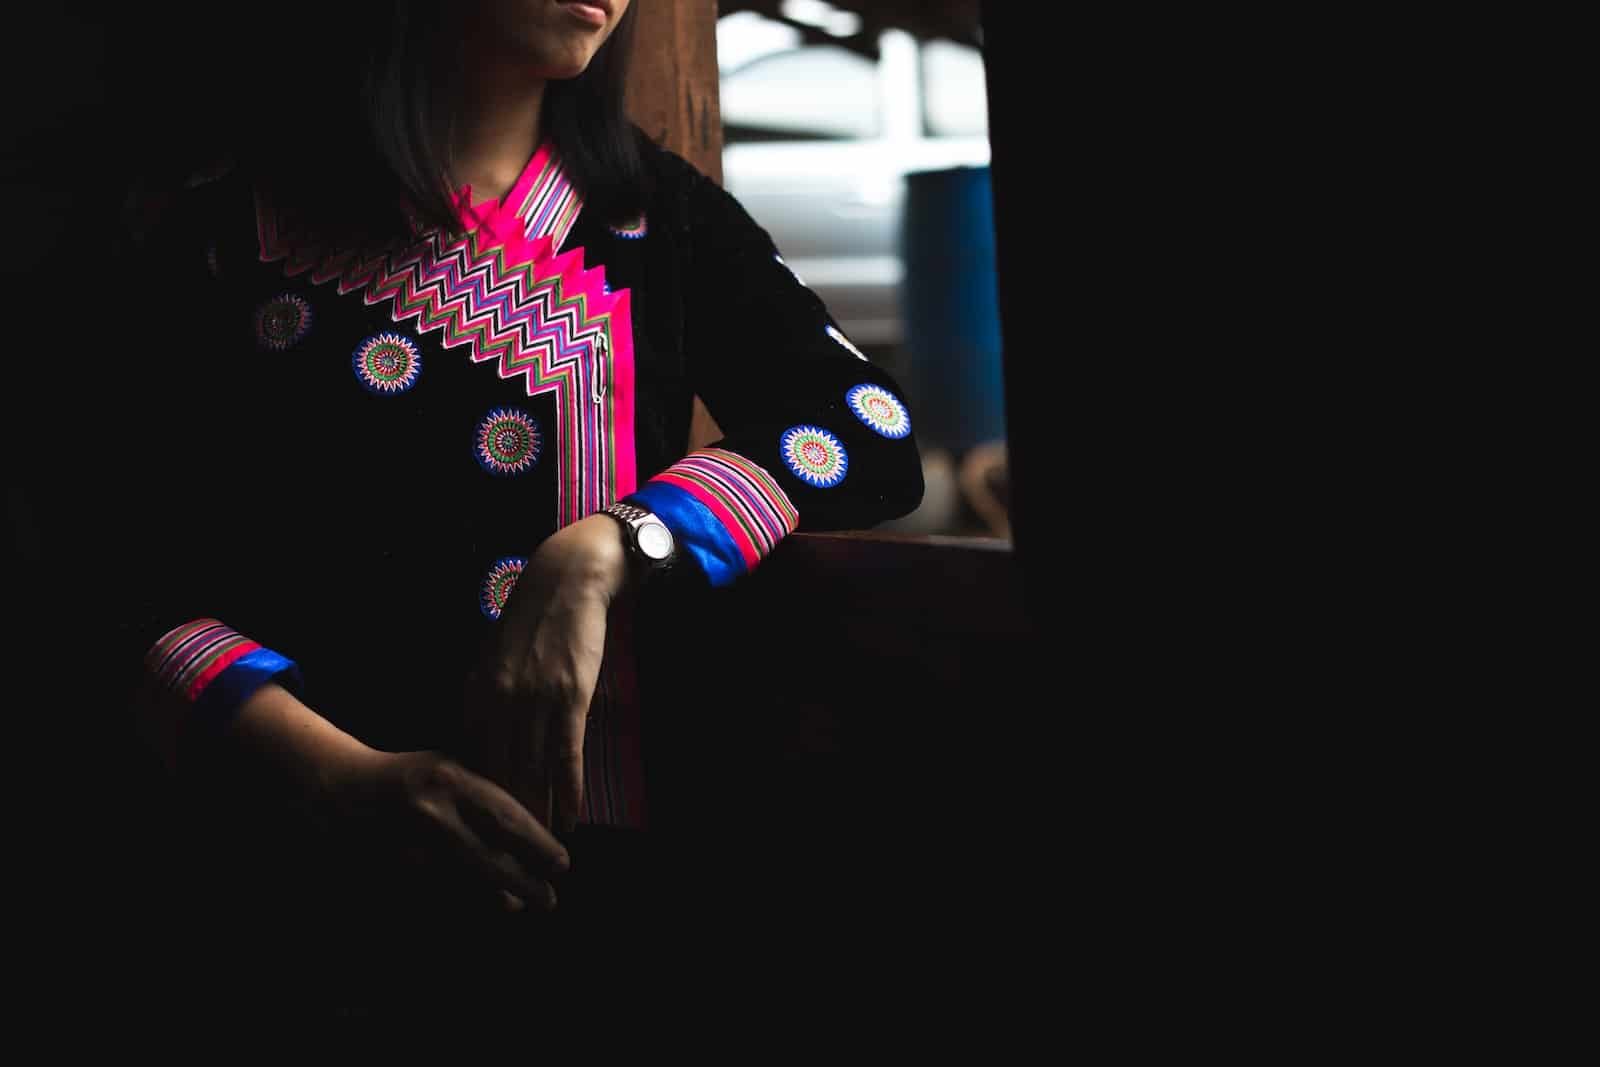 A girl wearing a colorful traditional Hmong outfit looks out the window.